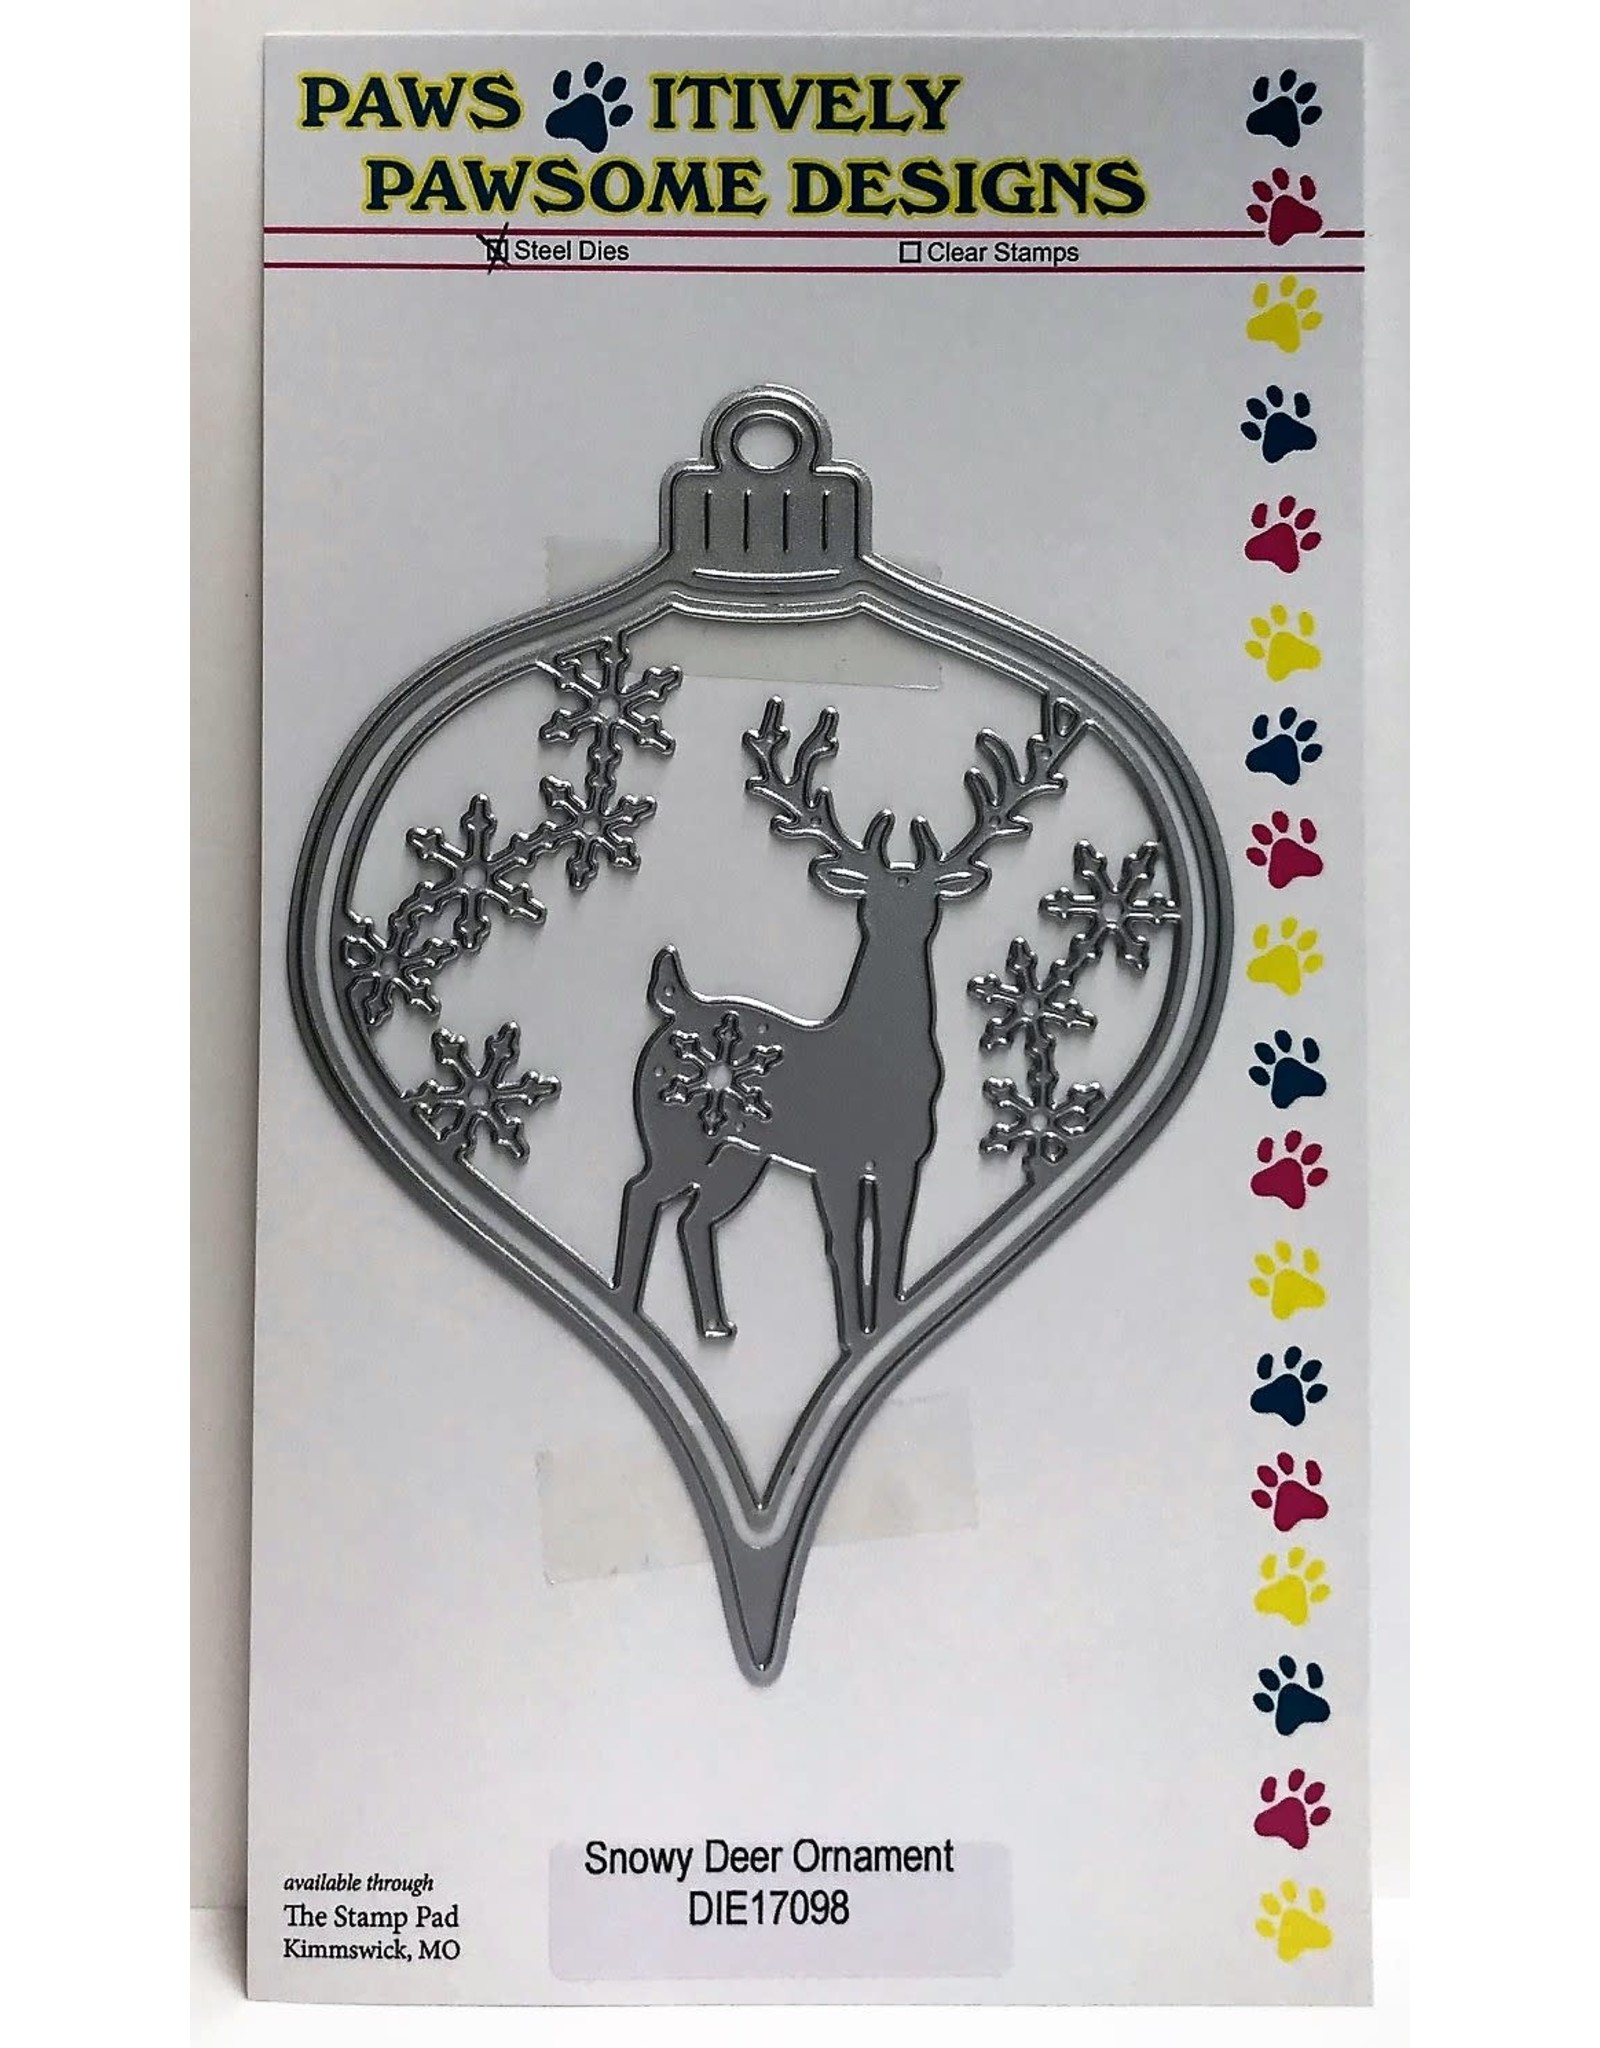 Paws-Itively Pawsome Designs Snowy Deer Ornament - Die